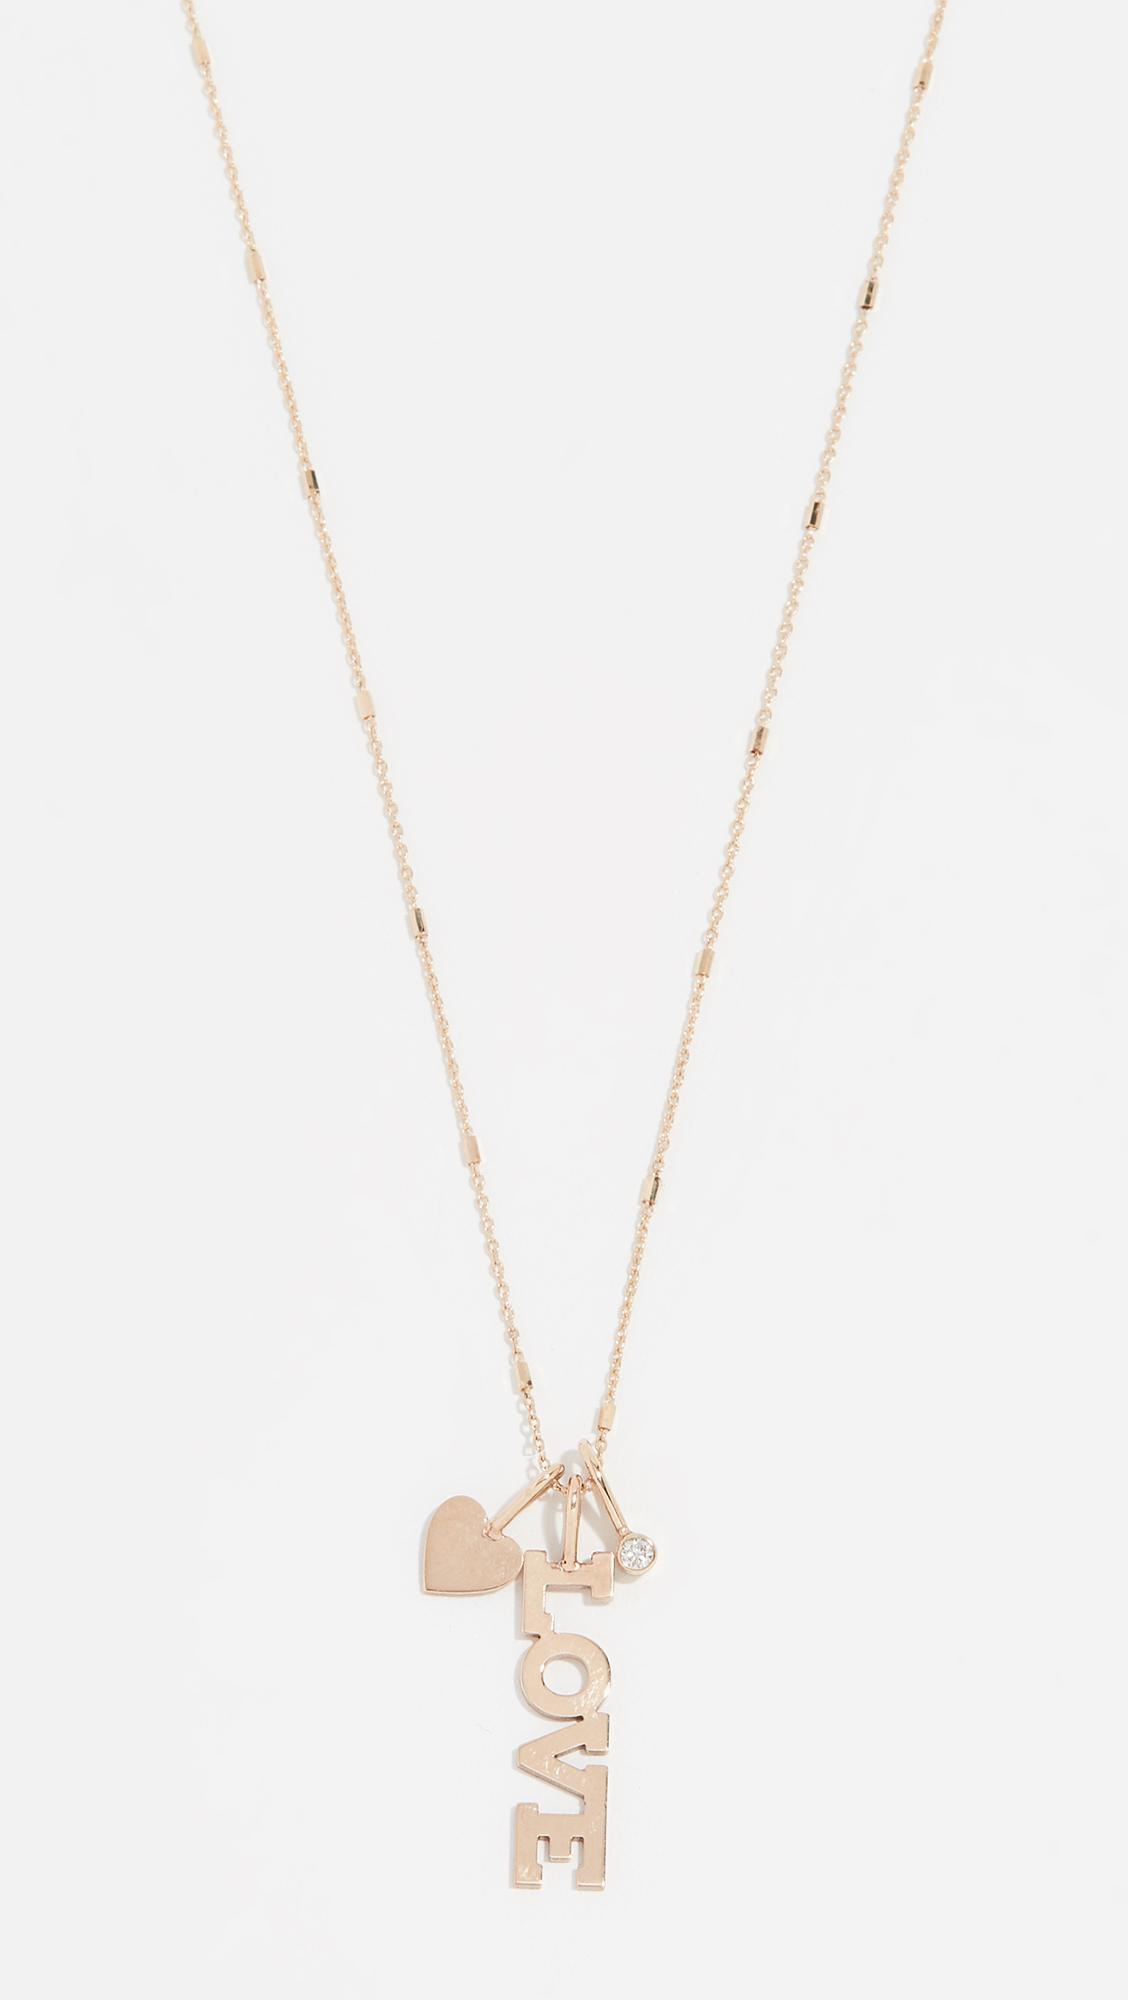 K/&C 14k Yellow Gold Small Block Initial C Charm on 14K Yellow Gold Rope Chain Necklace